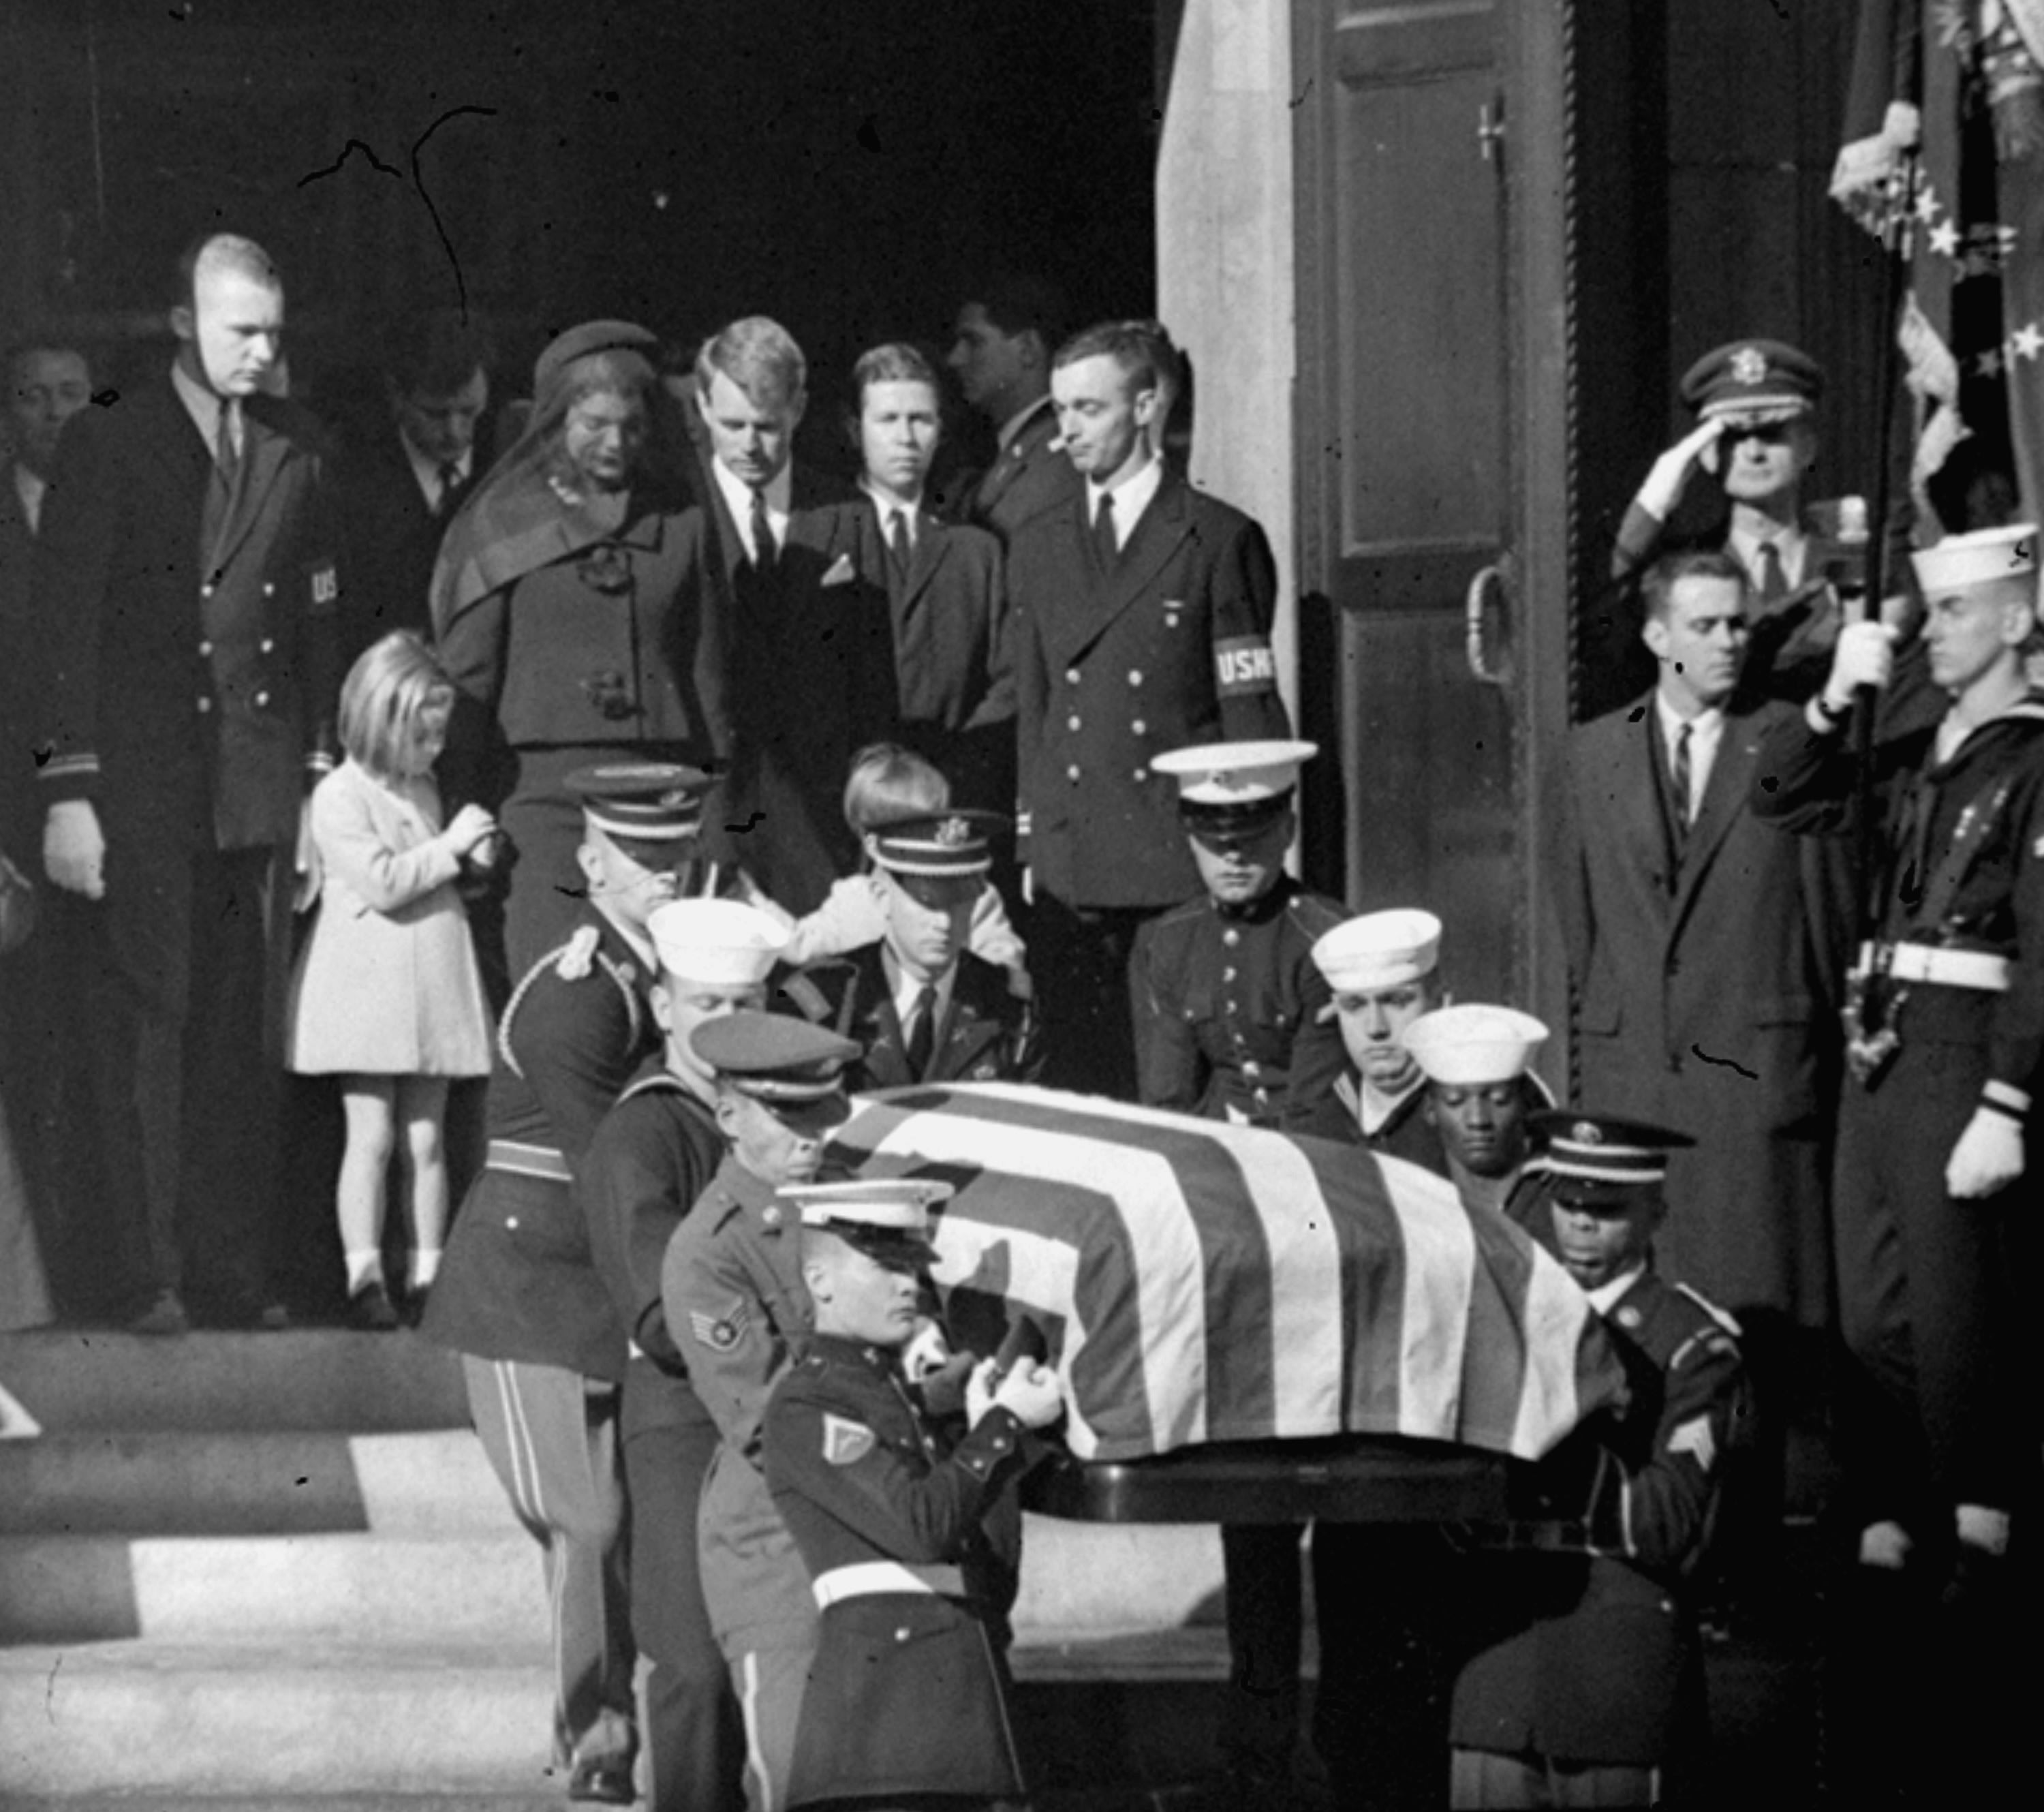 the presidency and death of john fitzgerald kennedy Former president john f kennedy was killed on nov 22, 1963, in dallas, texas  while riding in an open-top convertible during a parade.